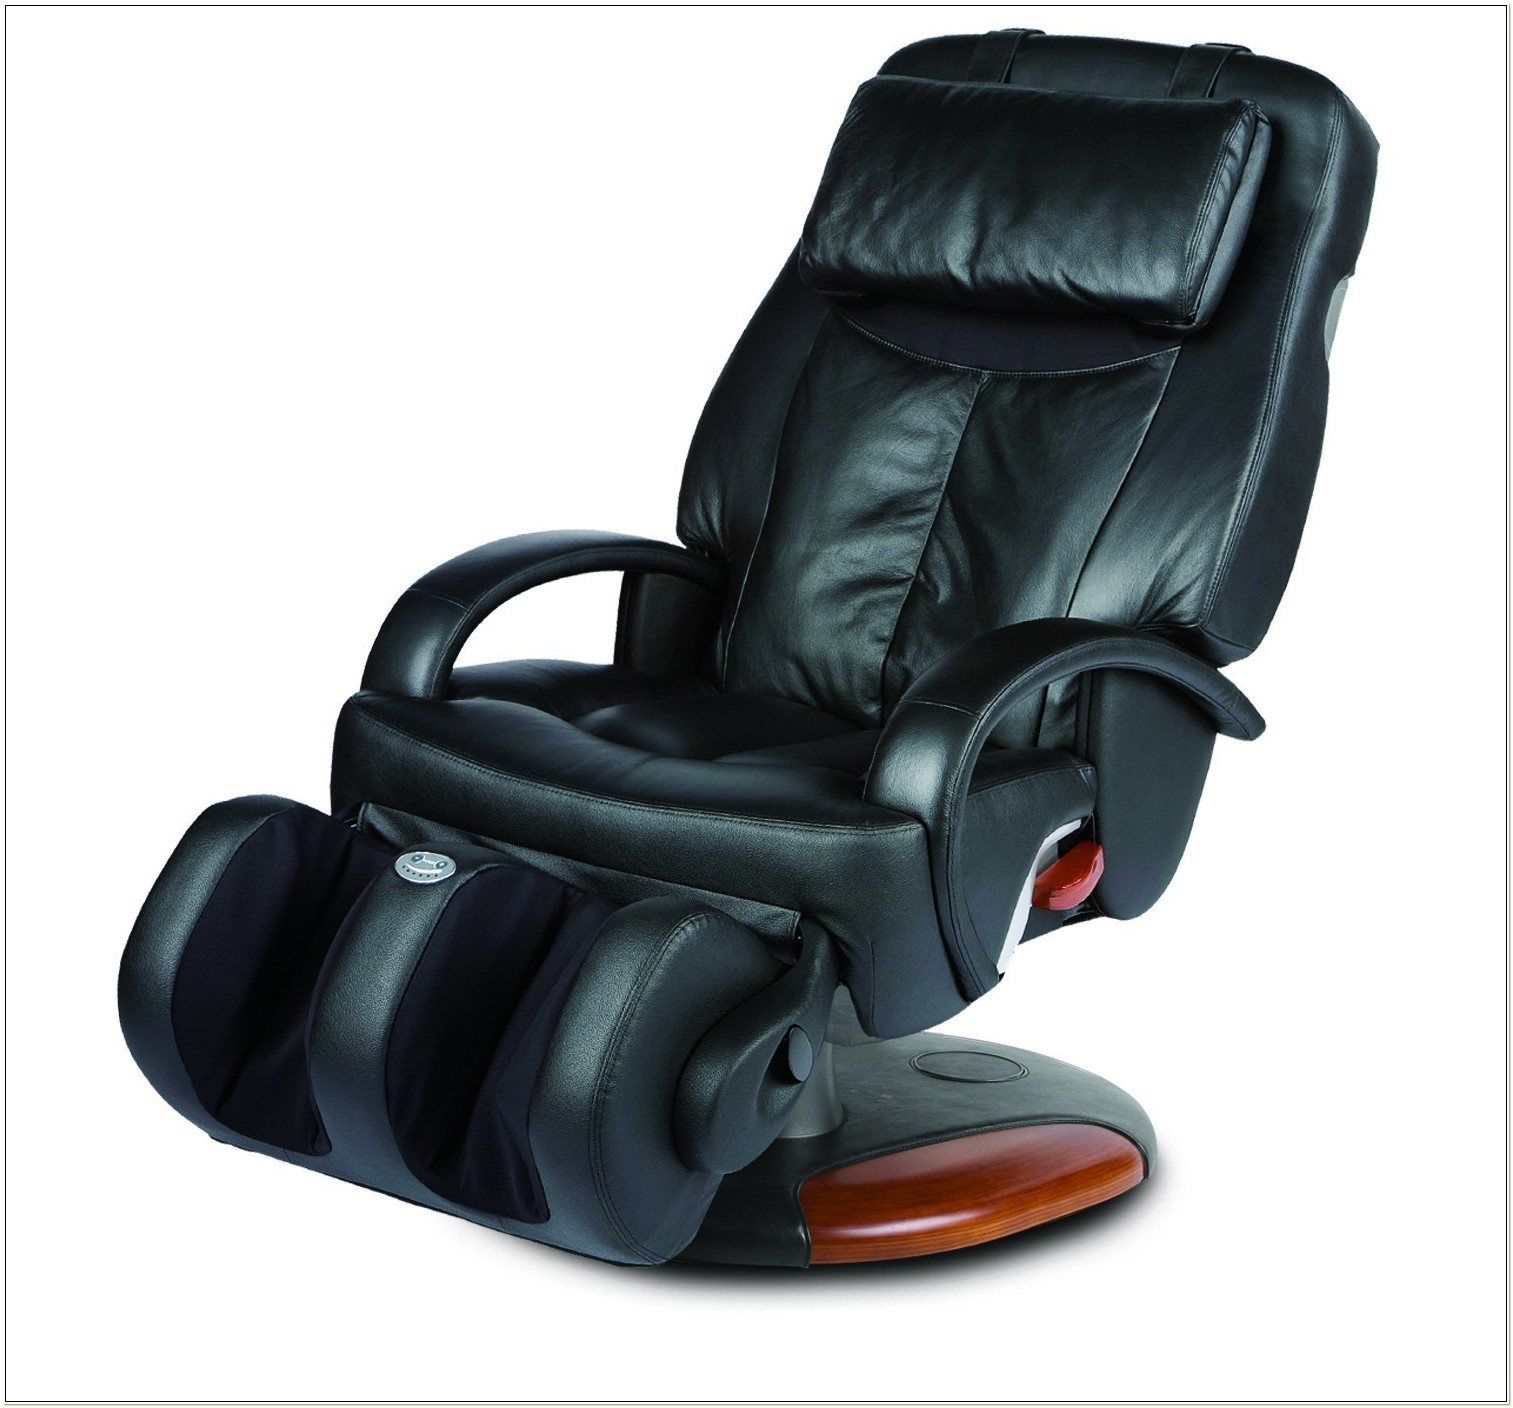 Human Touch Robotic Massage Chair Ht 270